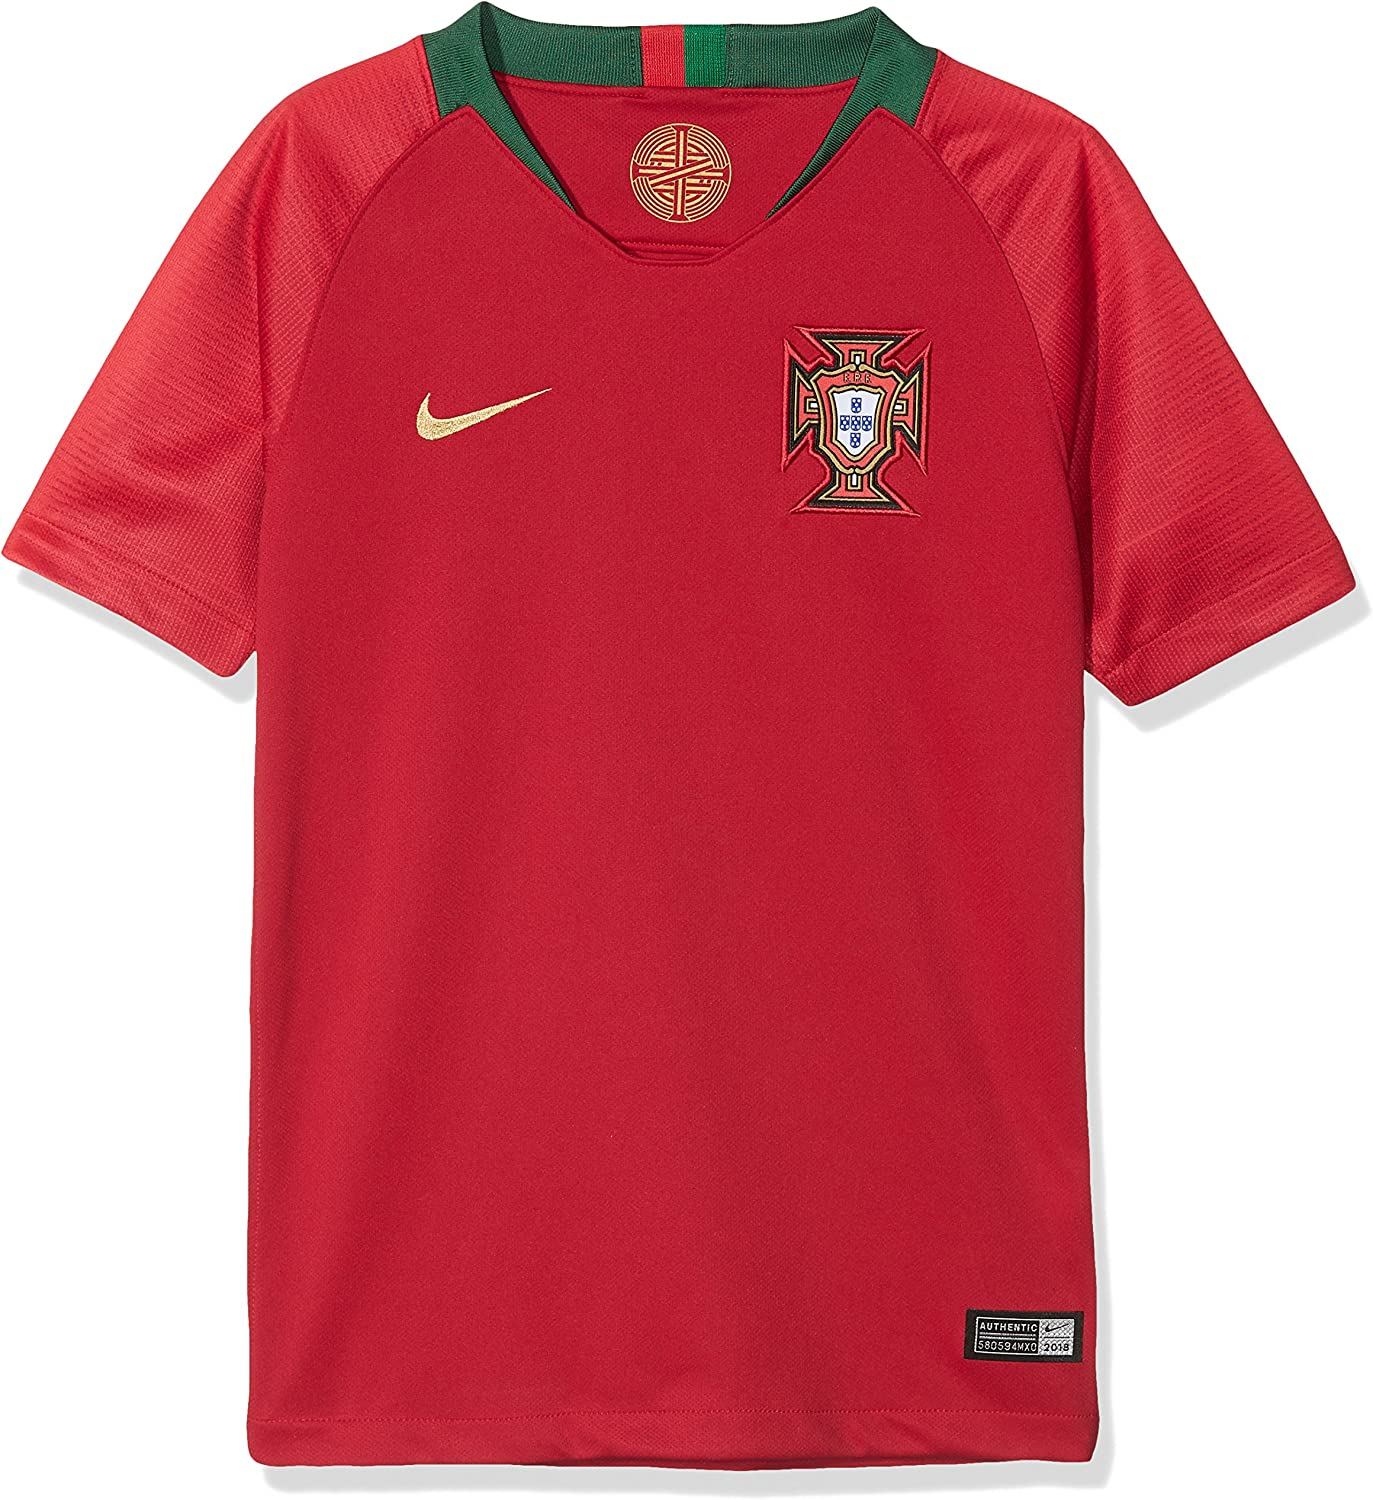 NIKE Youth Soccer Portugal Home Jersey